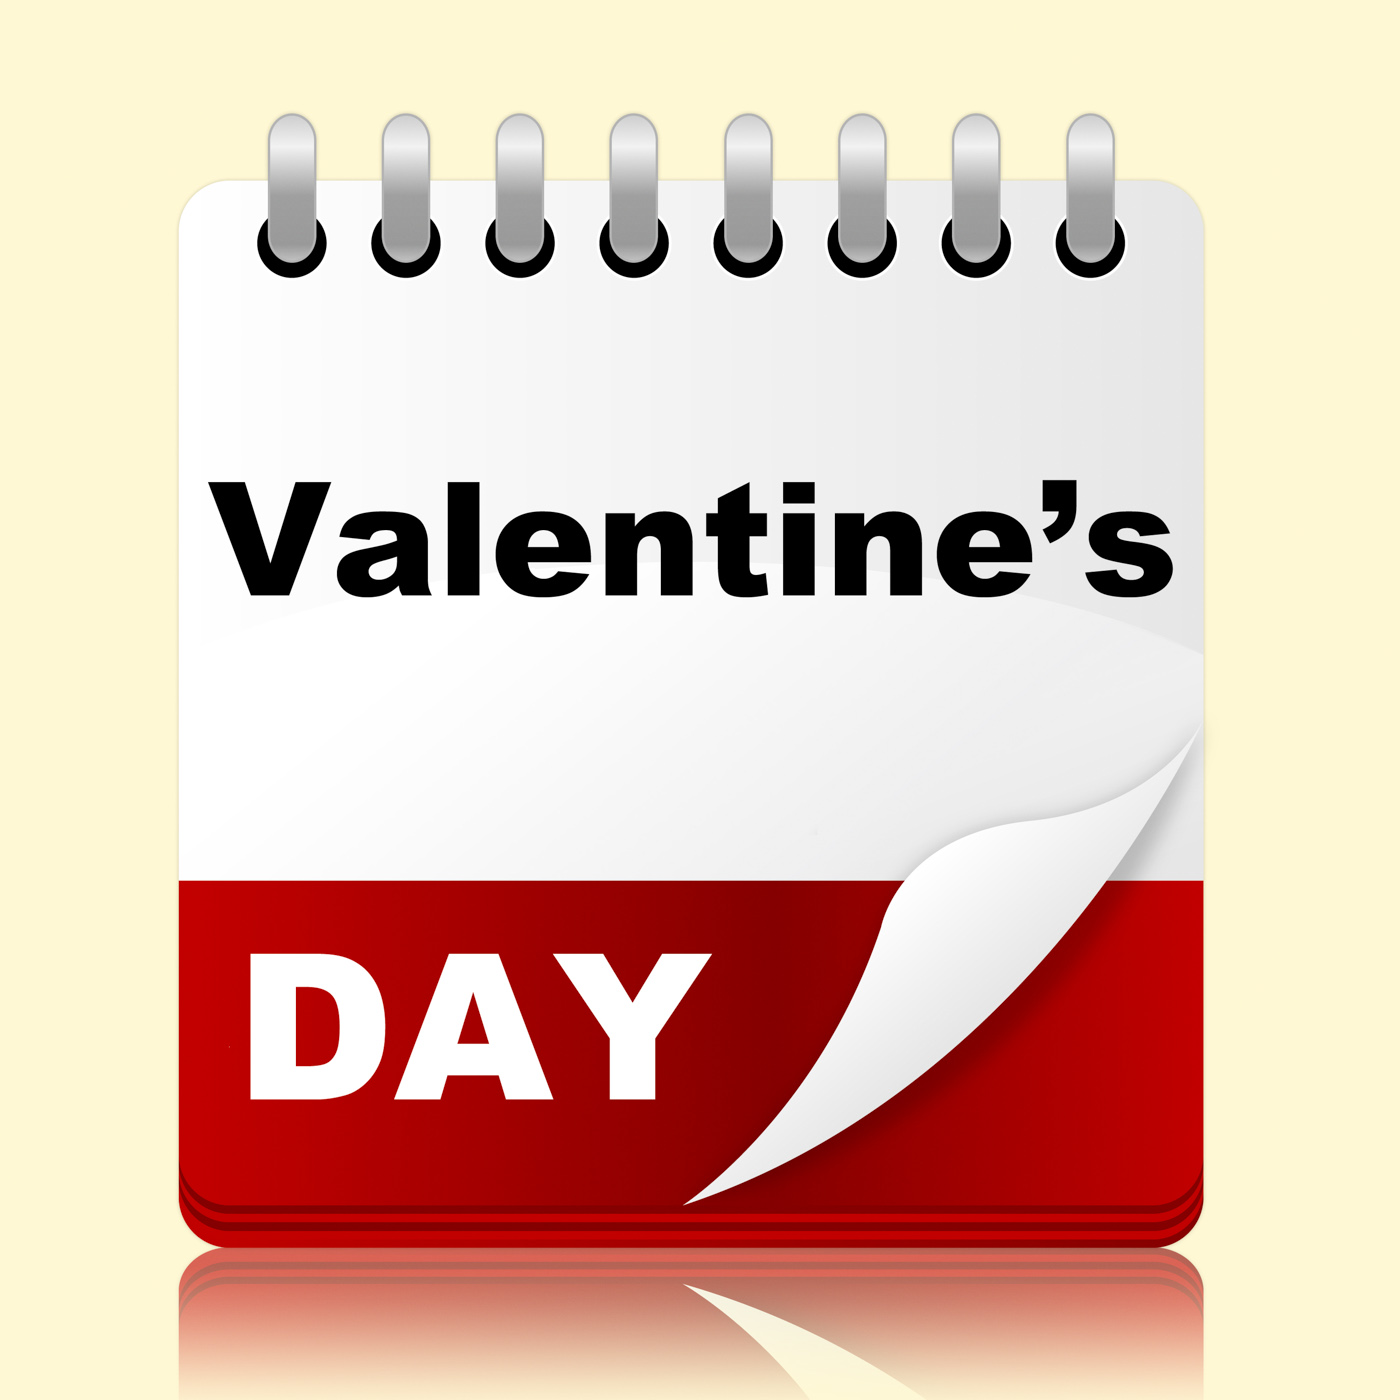 Valentines Day Indicates Planning Month And Affection, Affection, Plan, Valentines, Romantic, HQ Photo